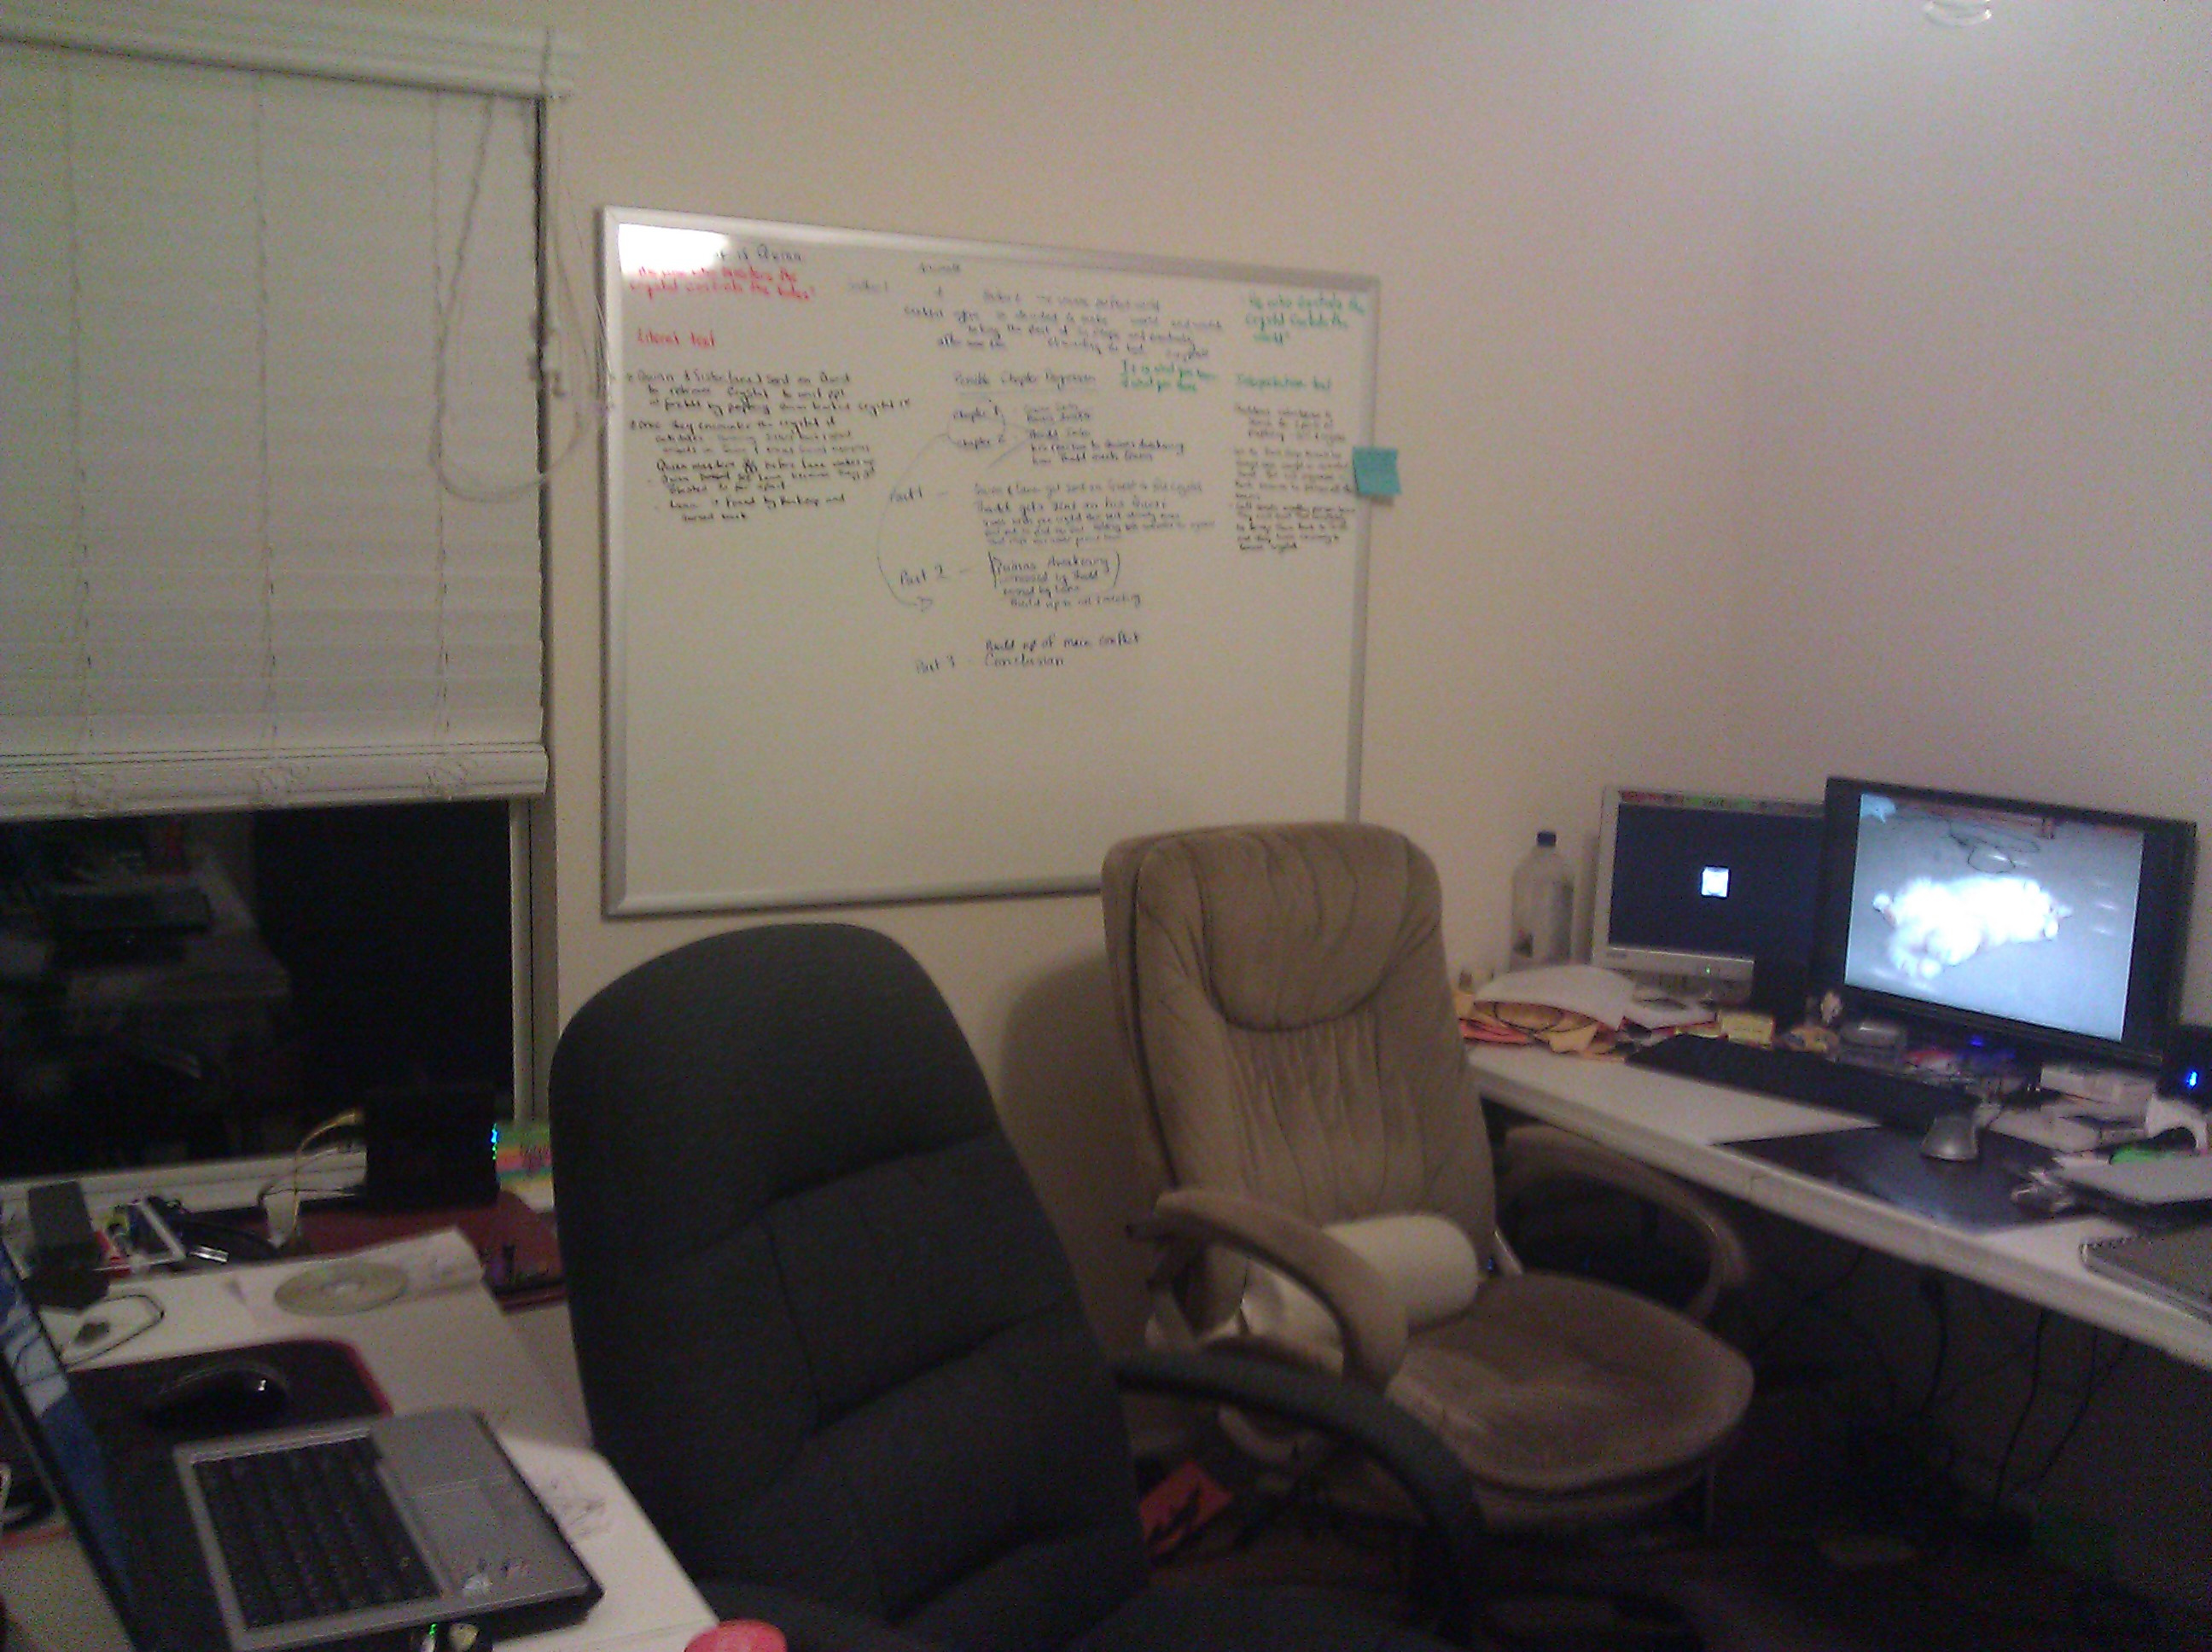 My Whiteboard & Workspace